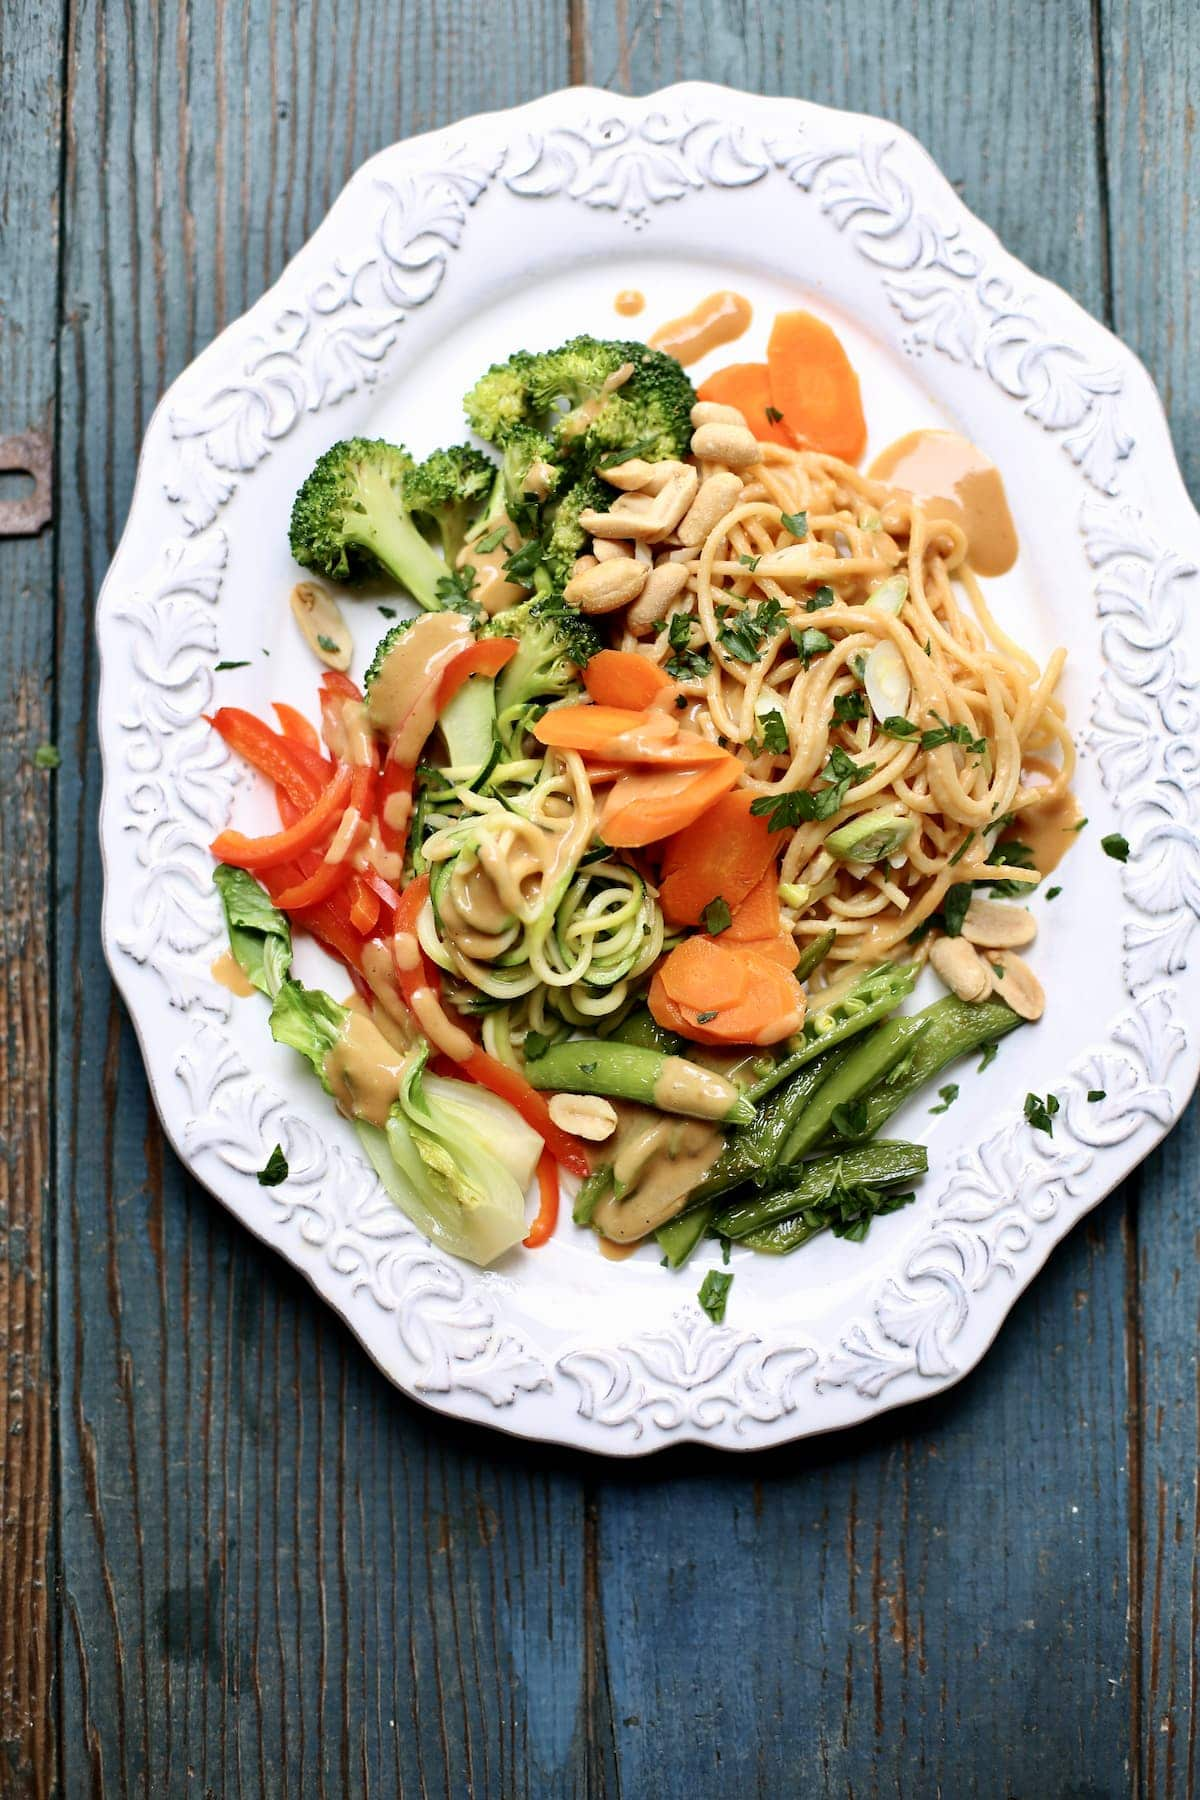 a cold noodle salad with peanut sauce and veggies on a white platter, sitting on a blue wooden table.